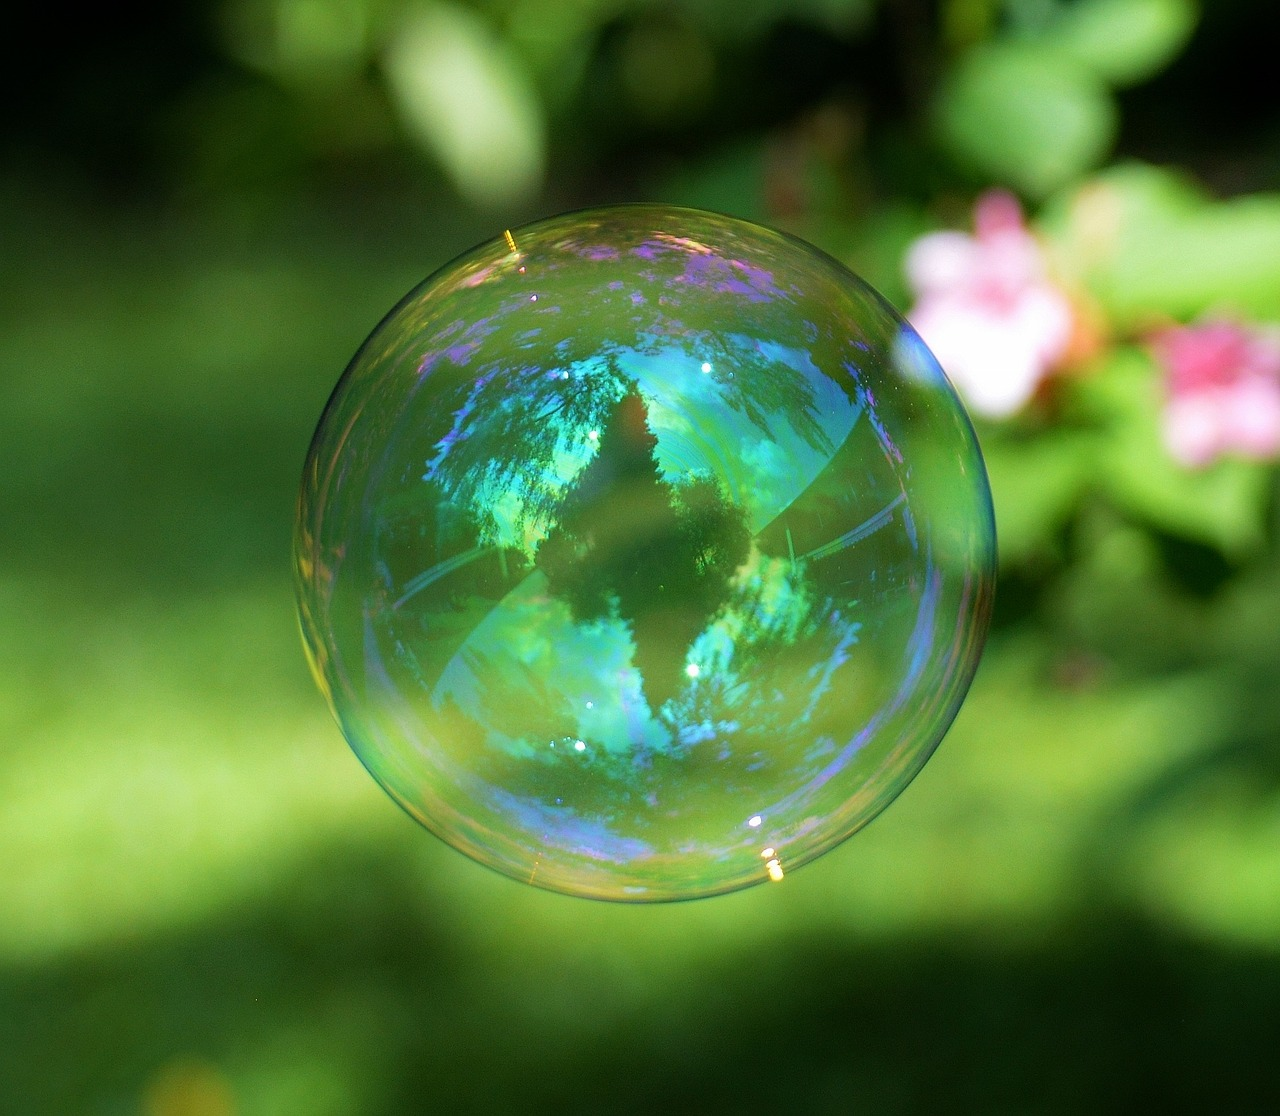 soap-bubble-824576_1280